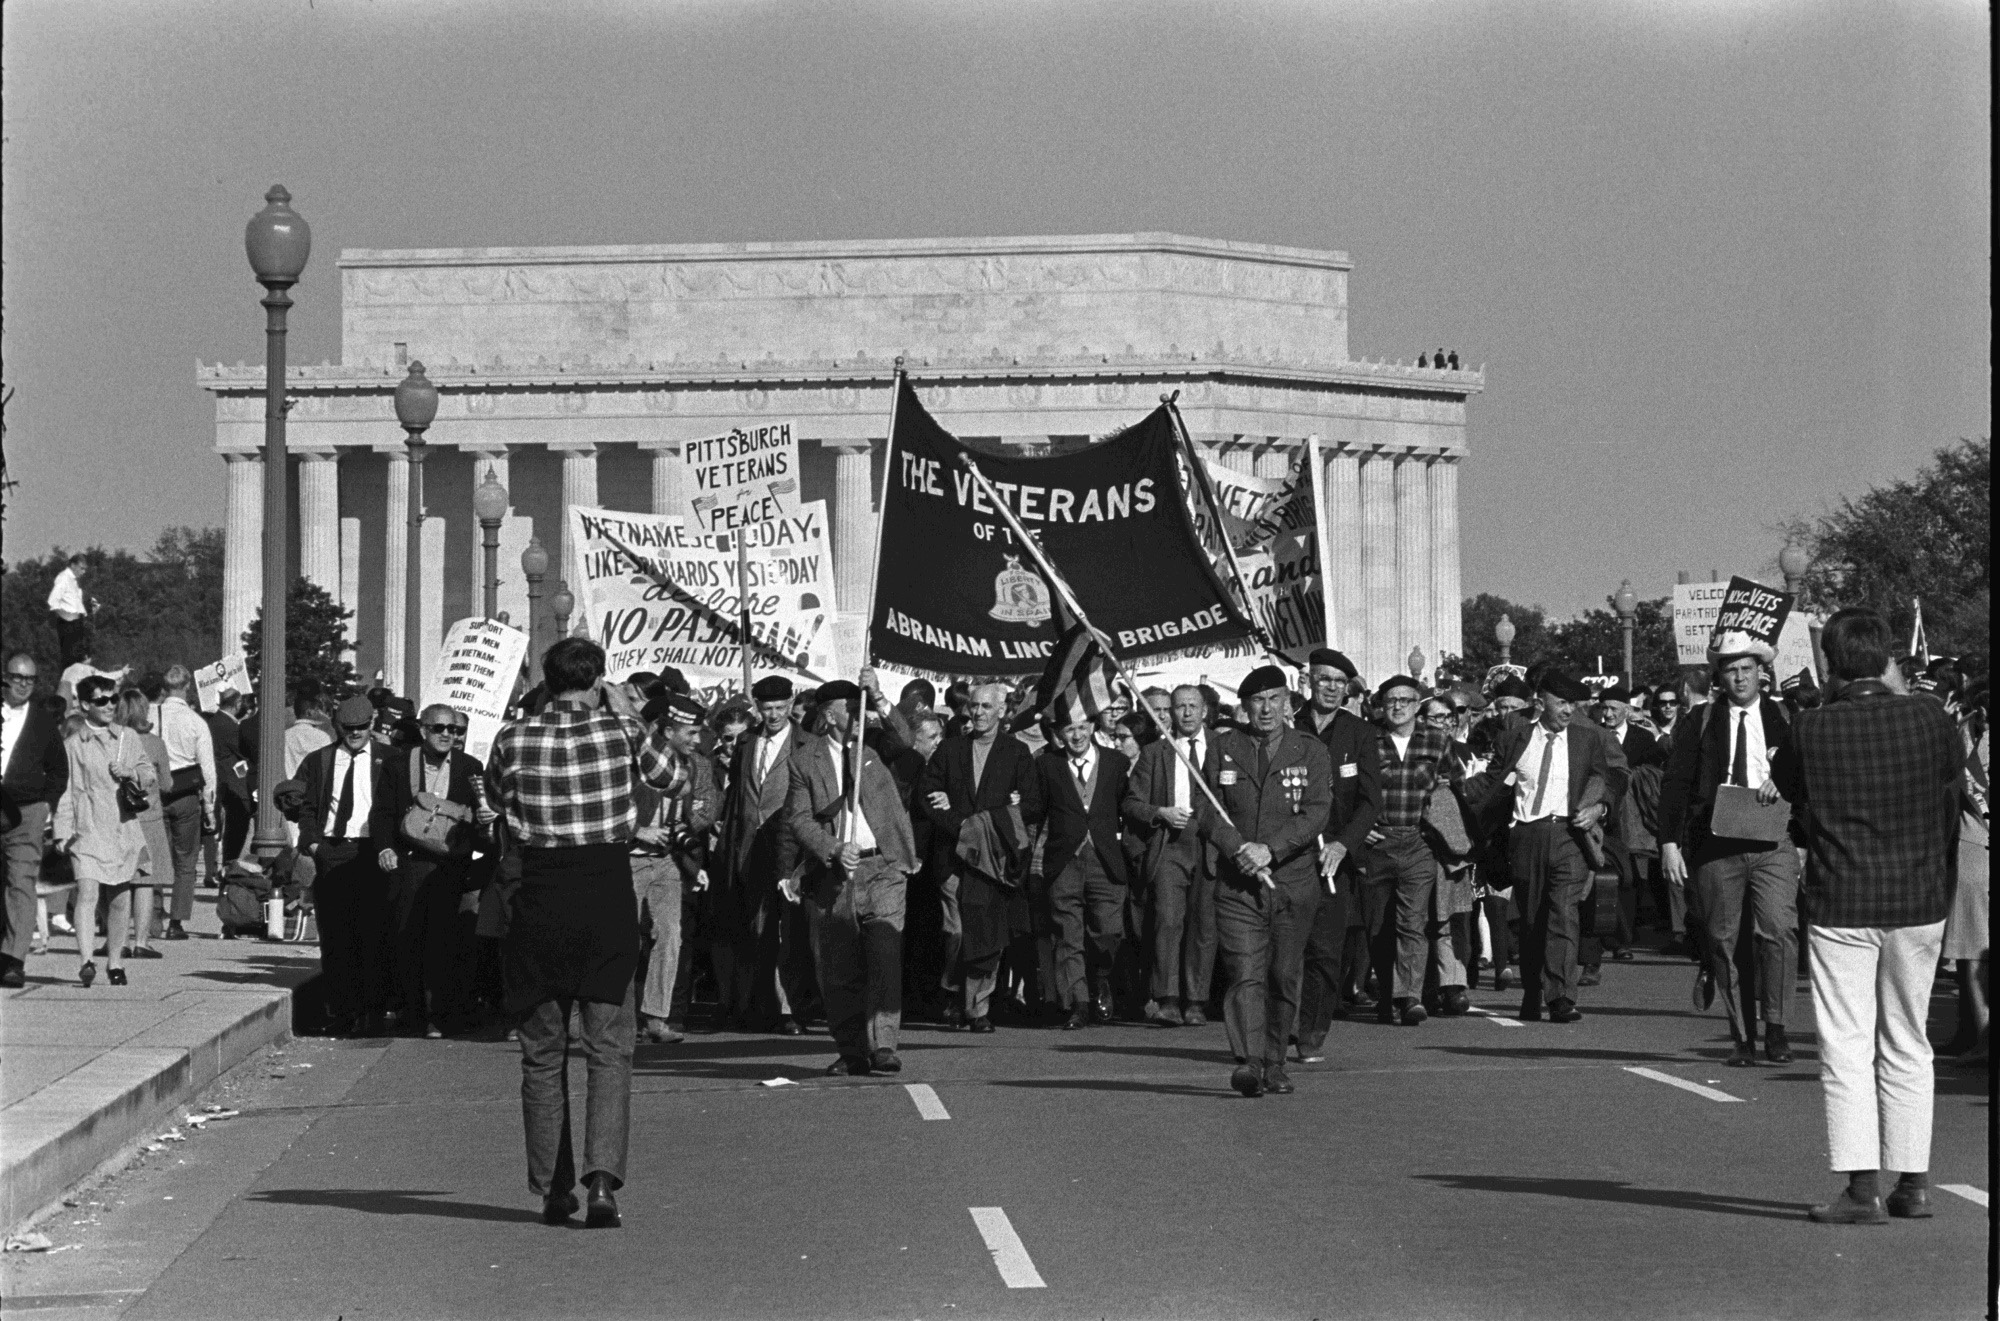 Vietnam War protestors Pittsburgh Veterans for Peace at the March on the Pentagon. October 21, 1967.